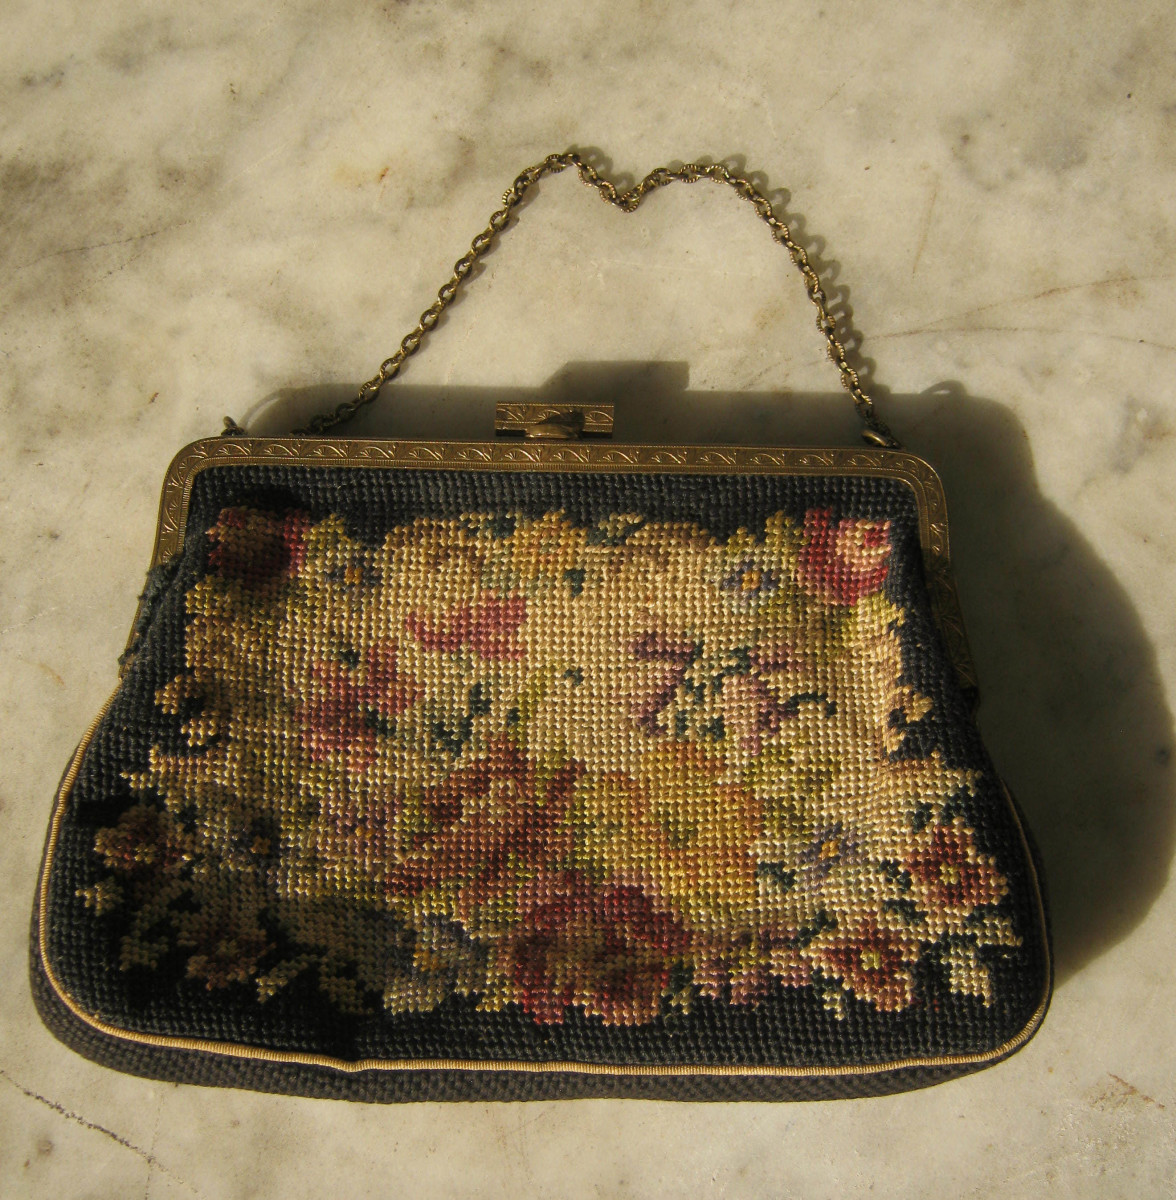 Tapestry bag with metal frame and chain handle.